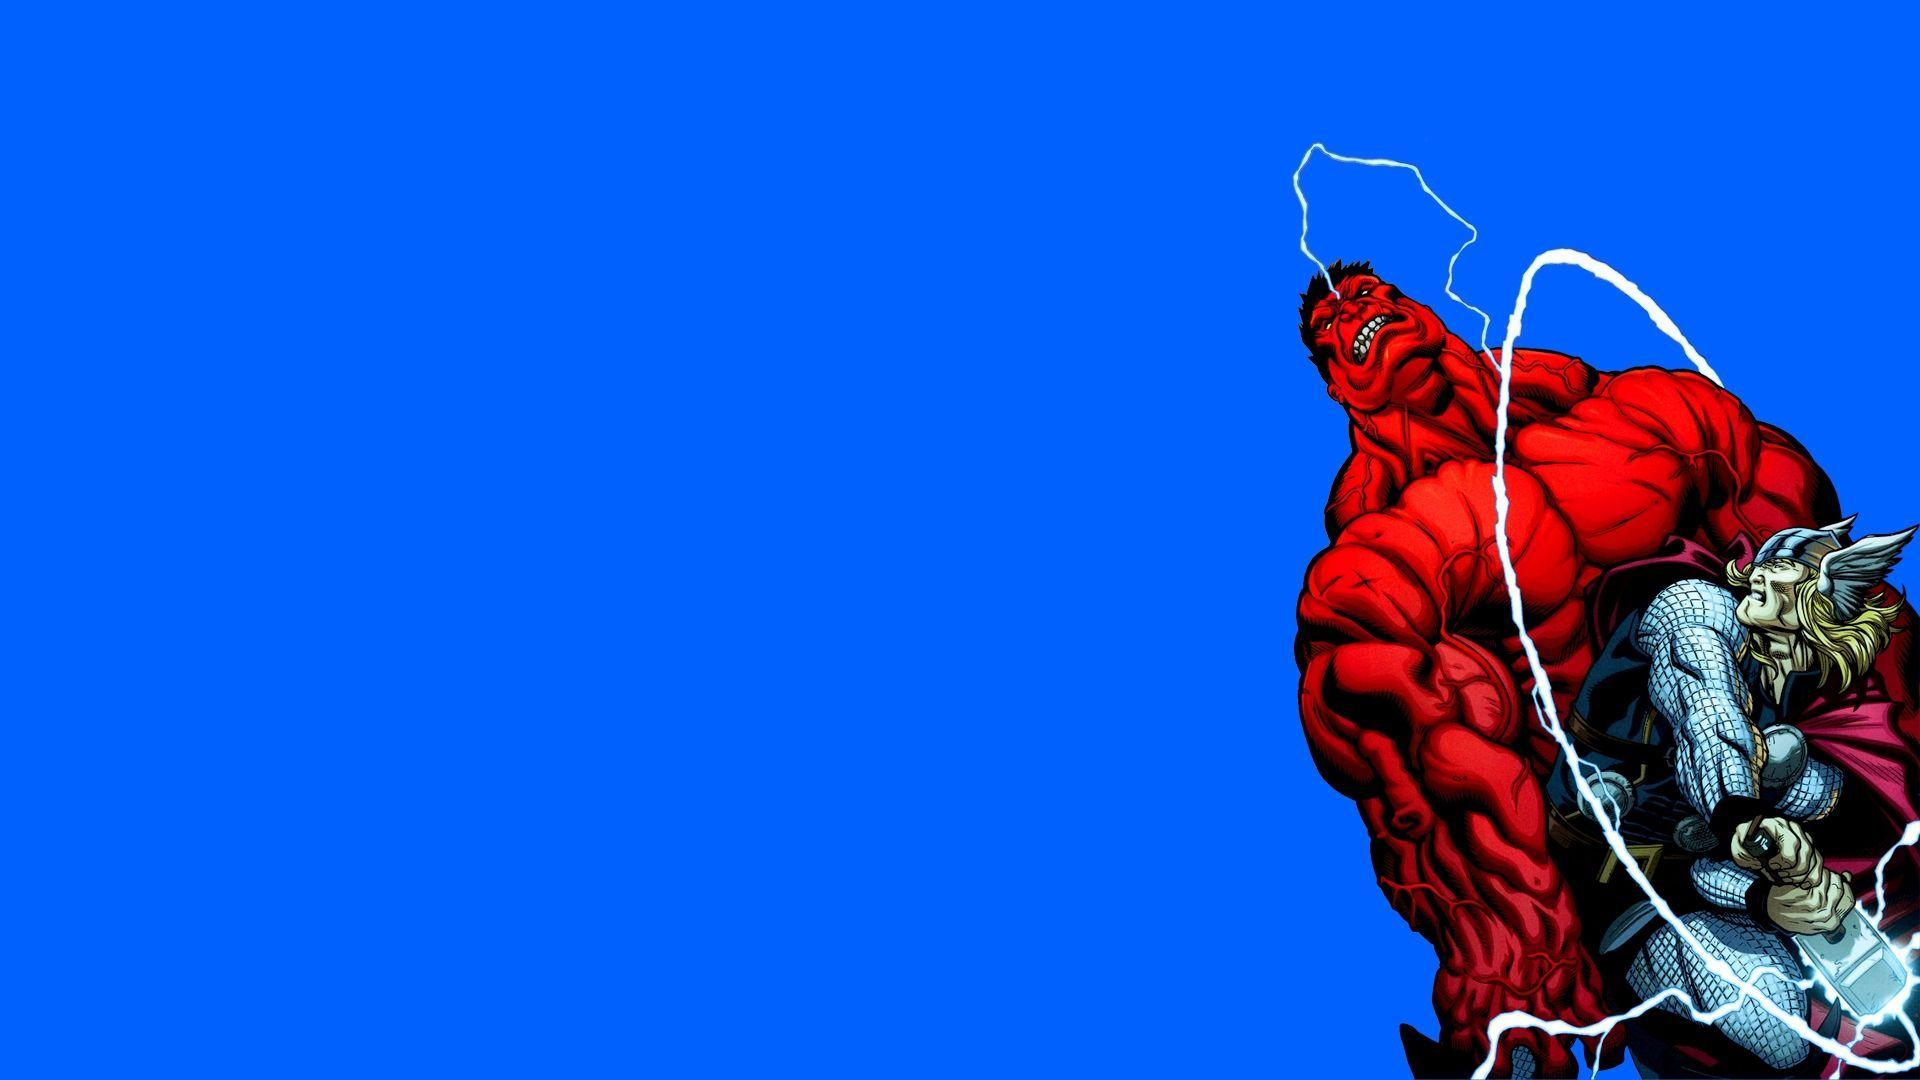 HD Red Hulk fighting Thor Wallpaper Download   149279 1920x1080